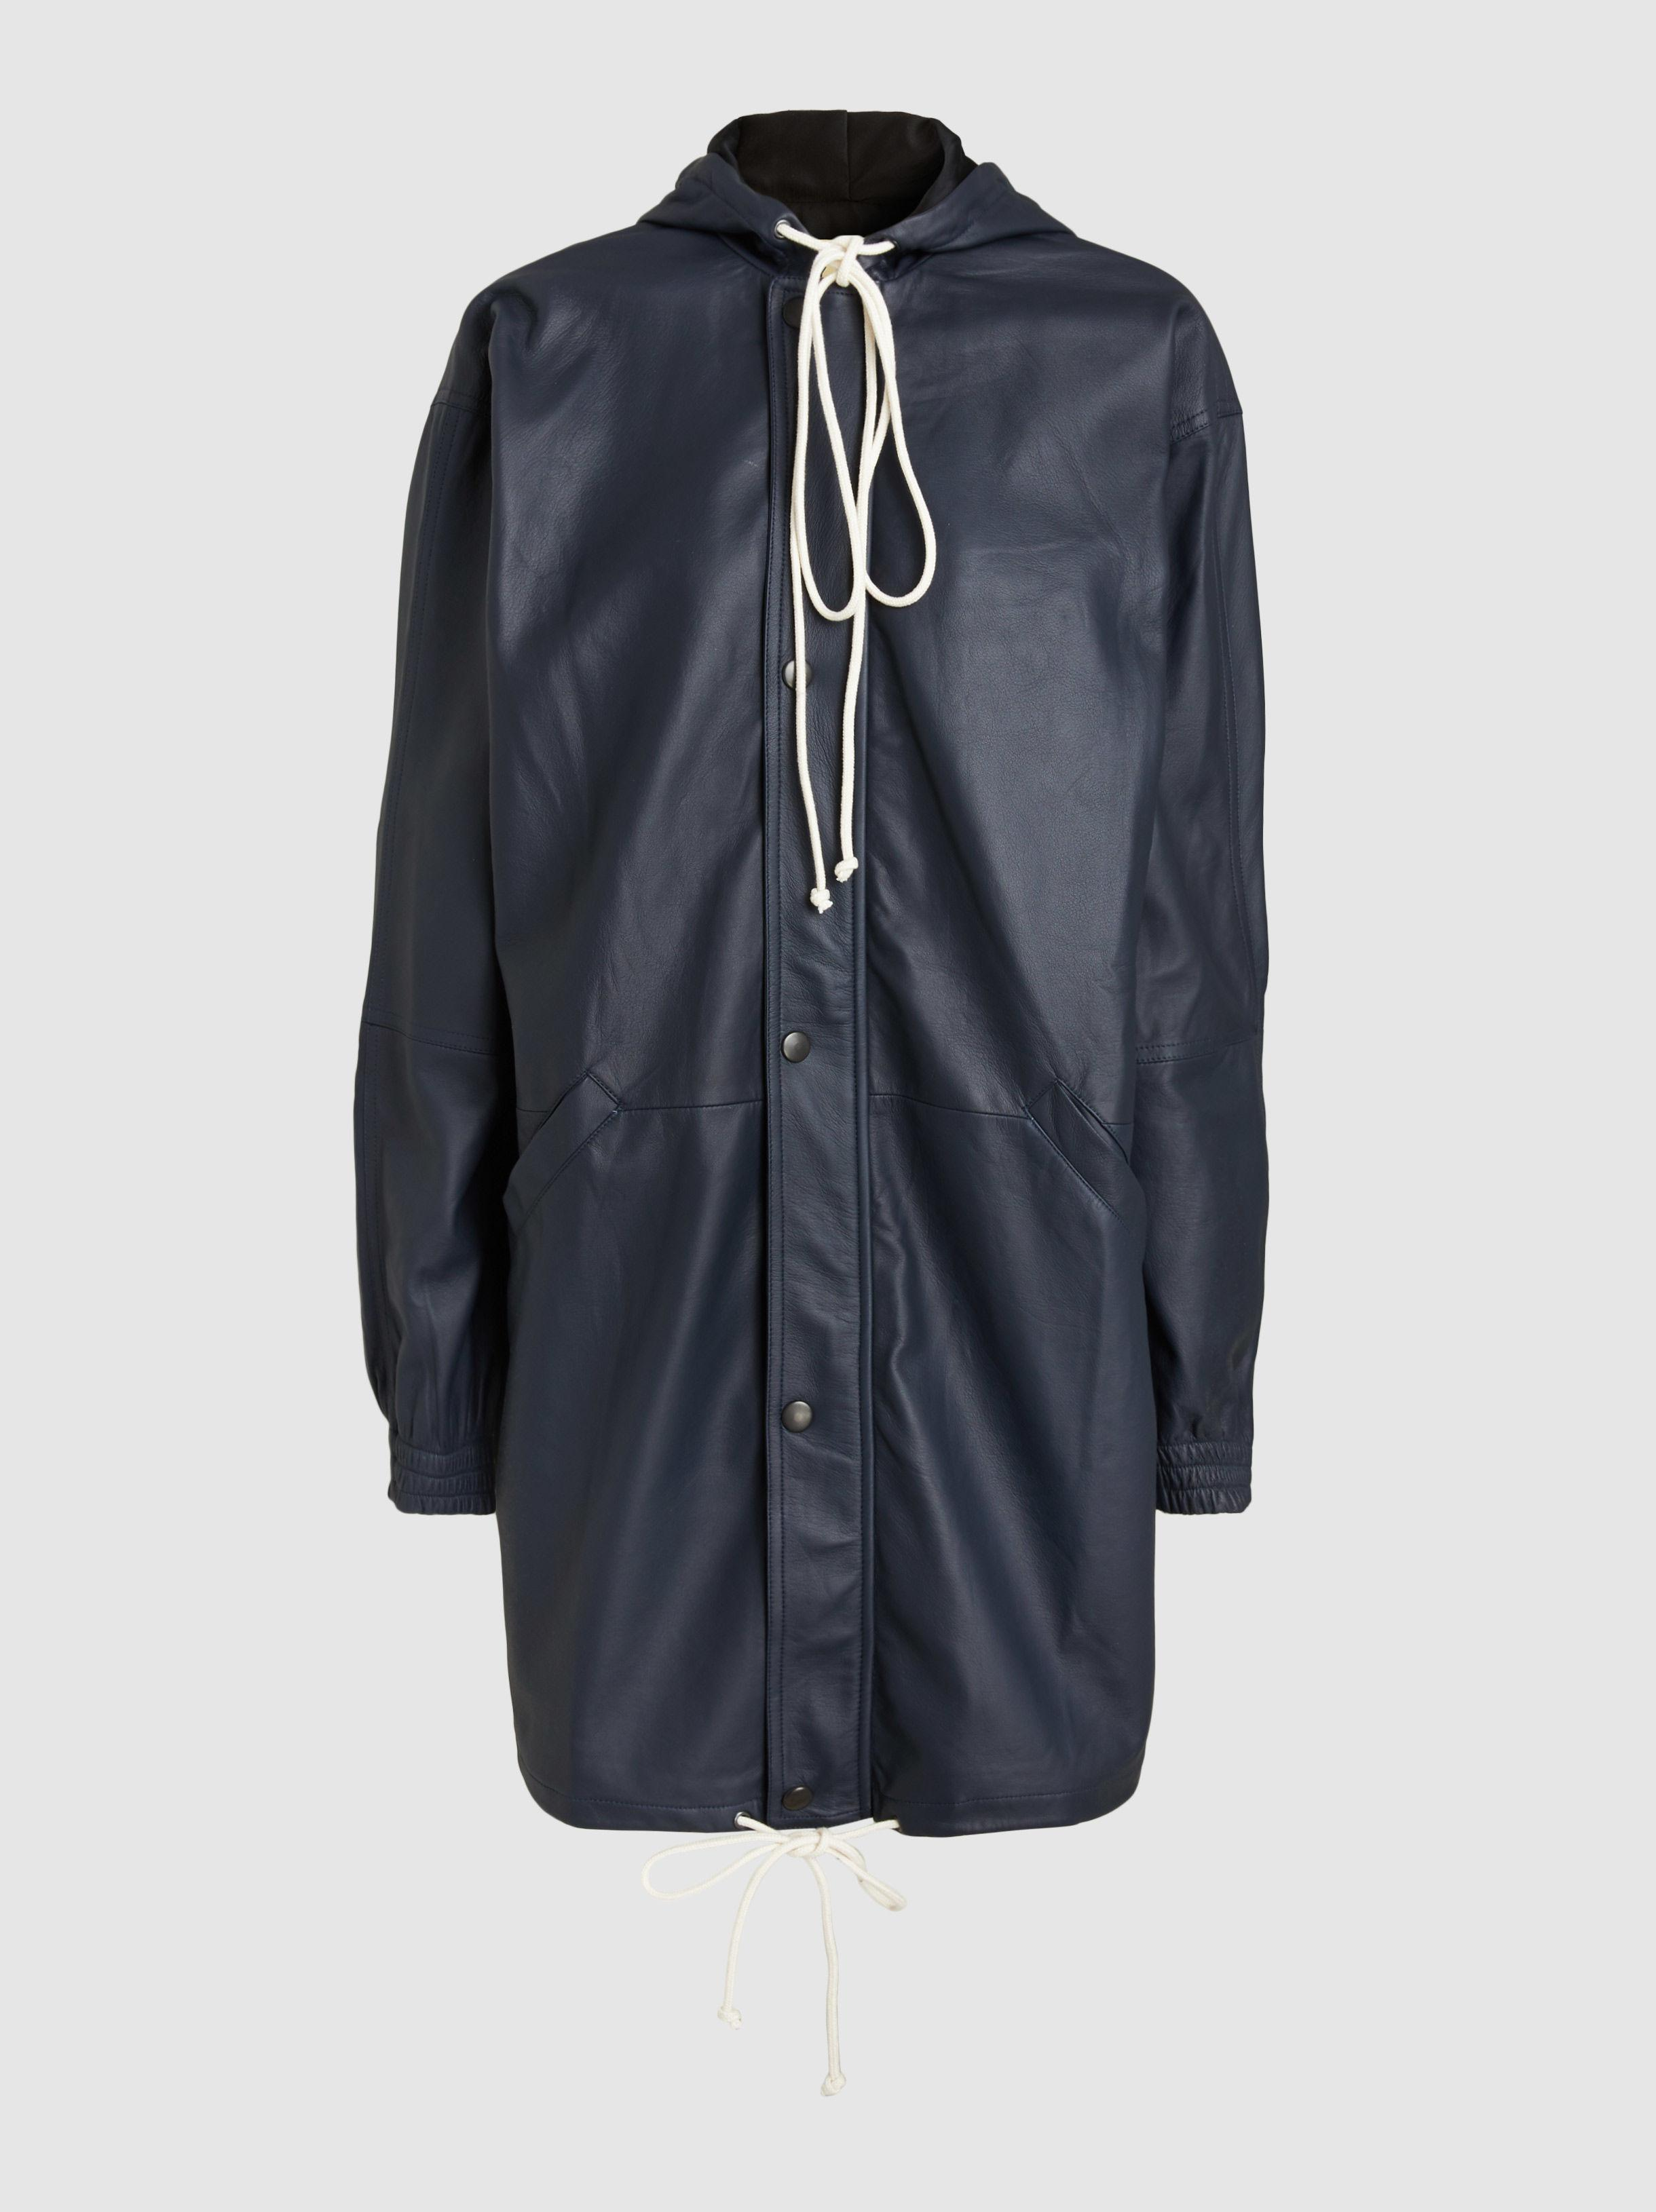 Cheap Marketable Leather Windbreaker Jacket BY. Bonnie Young Outlet Footaction Buy Cheap Sneakernews Discount Get Authentic bfdPJ